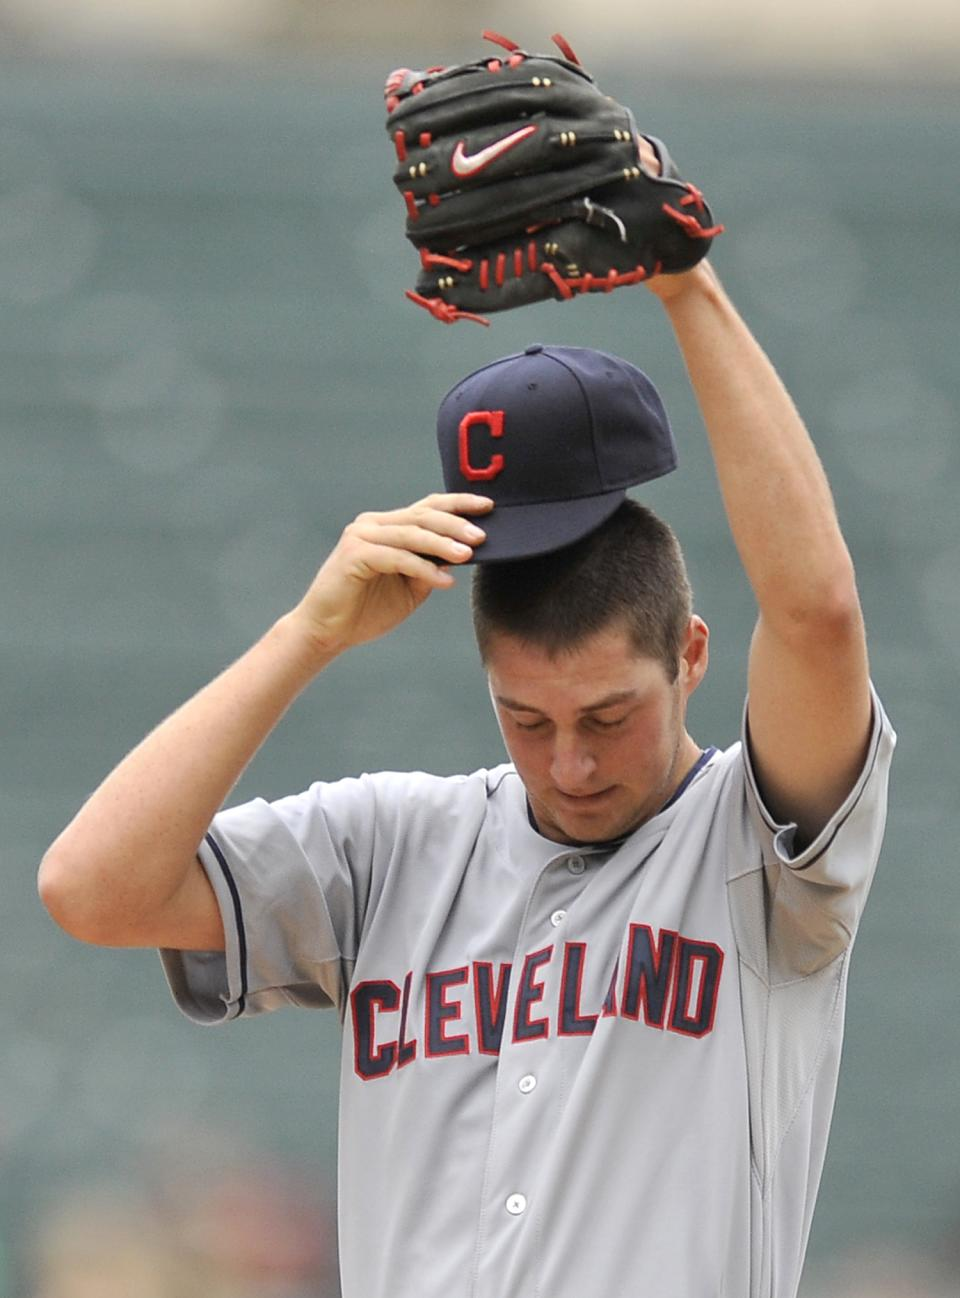 Cleveland Indians starter Trevor Bauer pauses after giving up two home runs during the first inning of the first baseball game of a doubleheader against the Chicago White Sox in Chicago, Friday, June 28, 2013. Bauer was removed from the game in the first inning. (AP Photo/Paul Beaty)